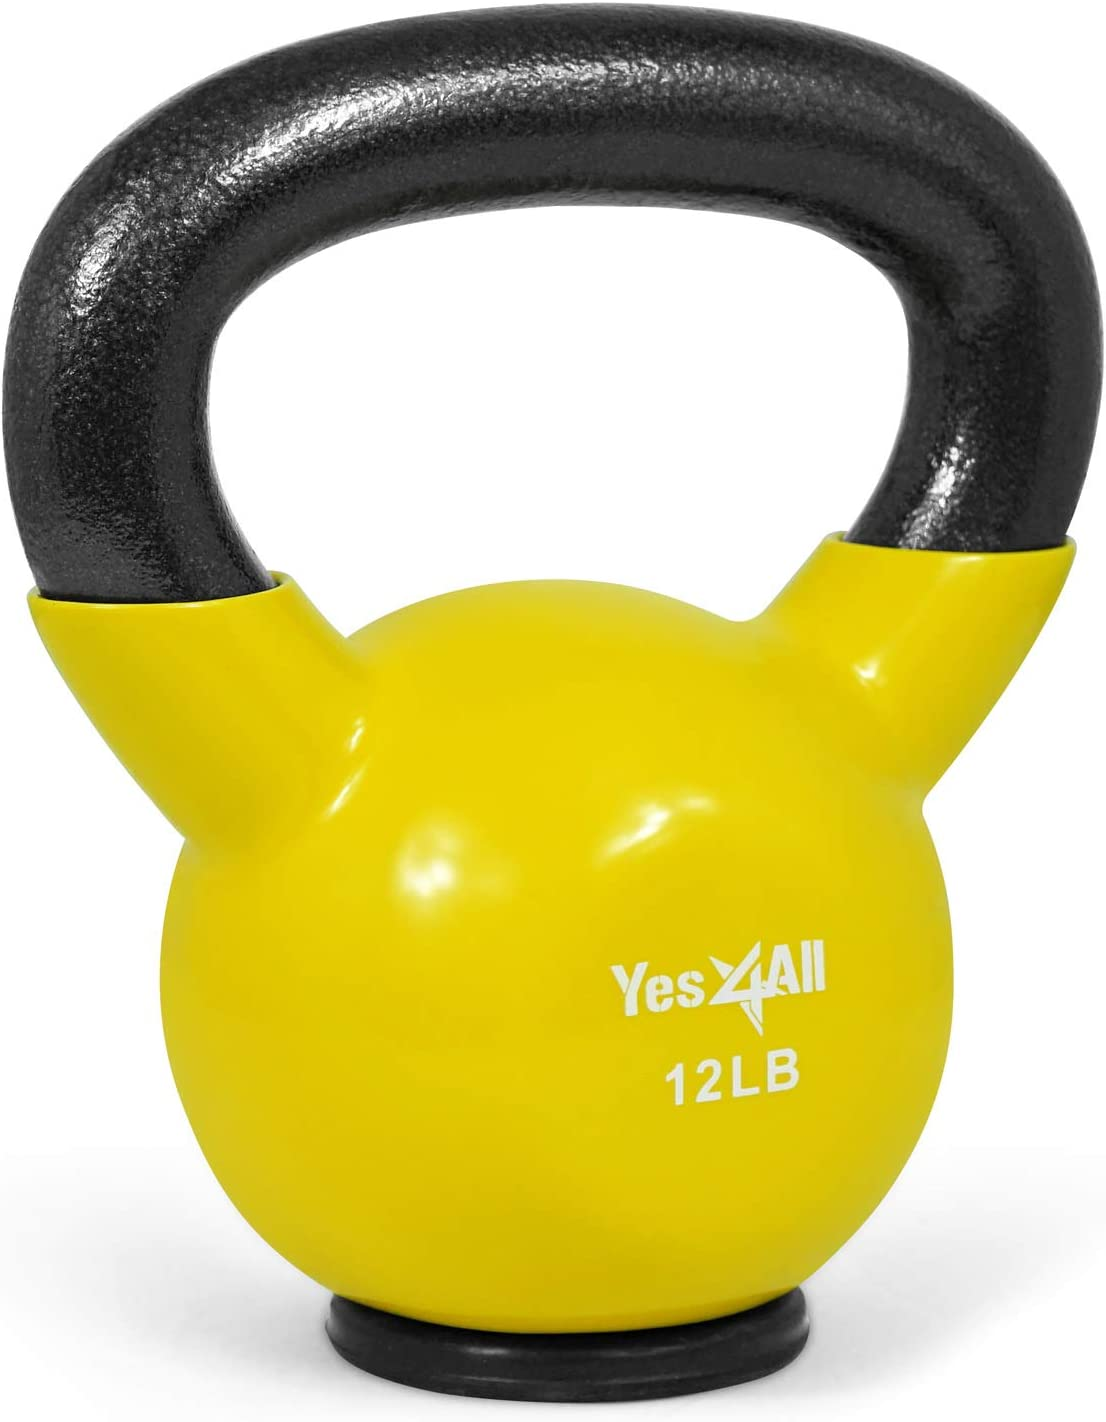 30 45 35 Yes4All Vinyl Coated Kettlebells 25 20 Weight Available: 5 10 15 50 lbs 40